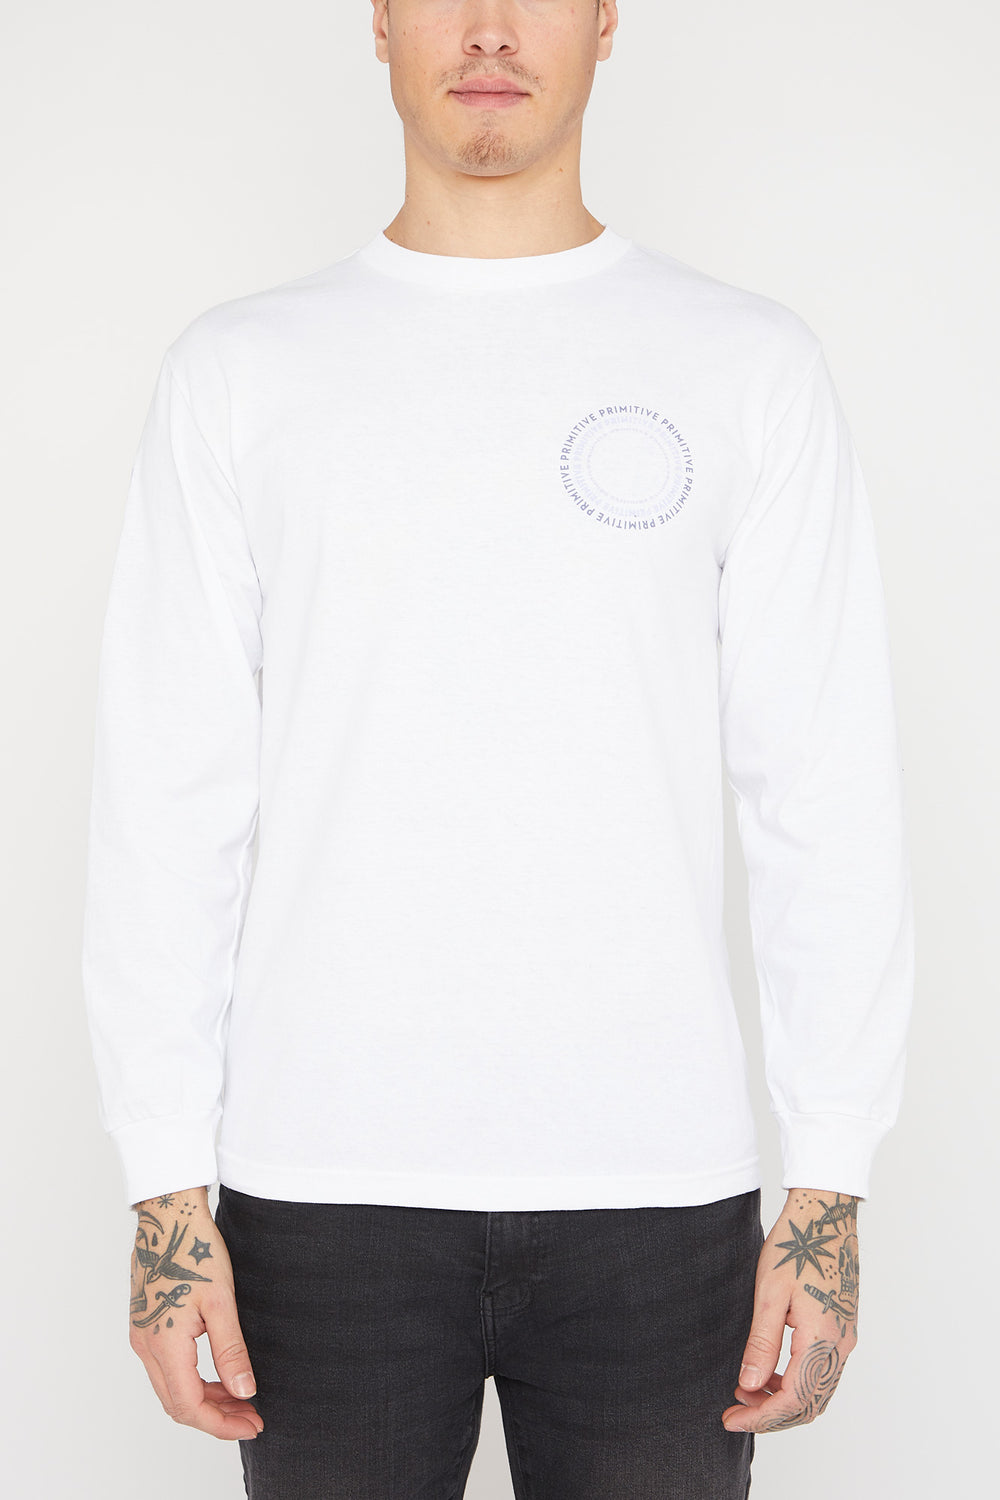 Primitive New Pace Long Sleeve White